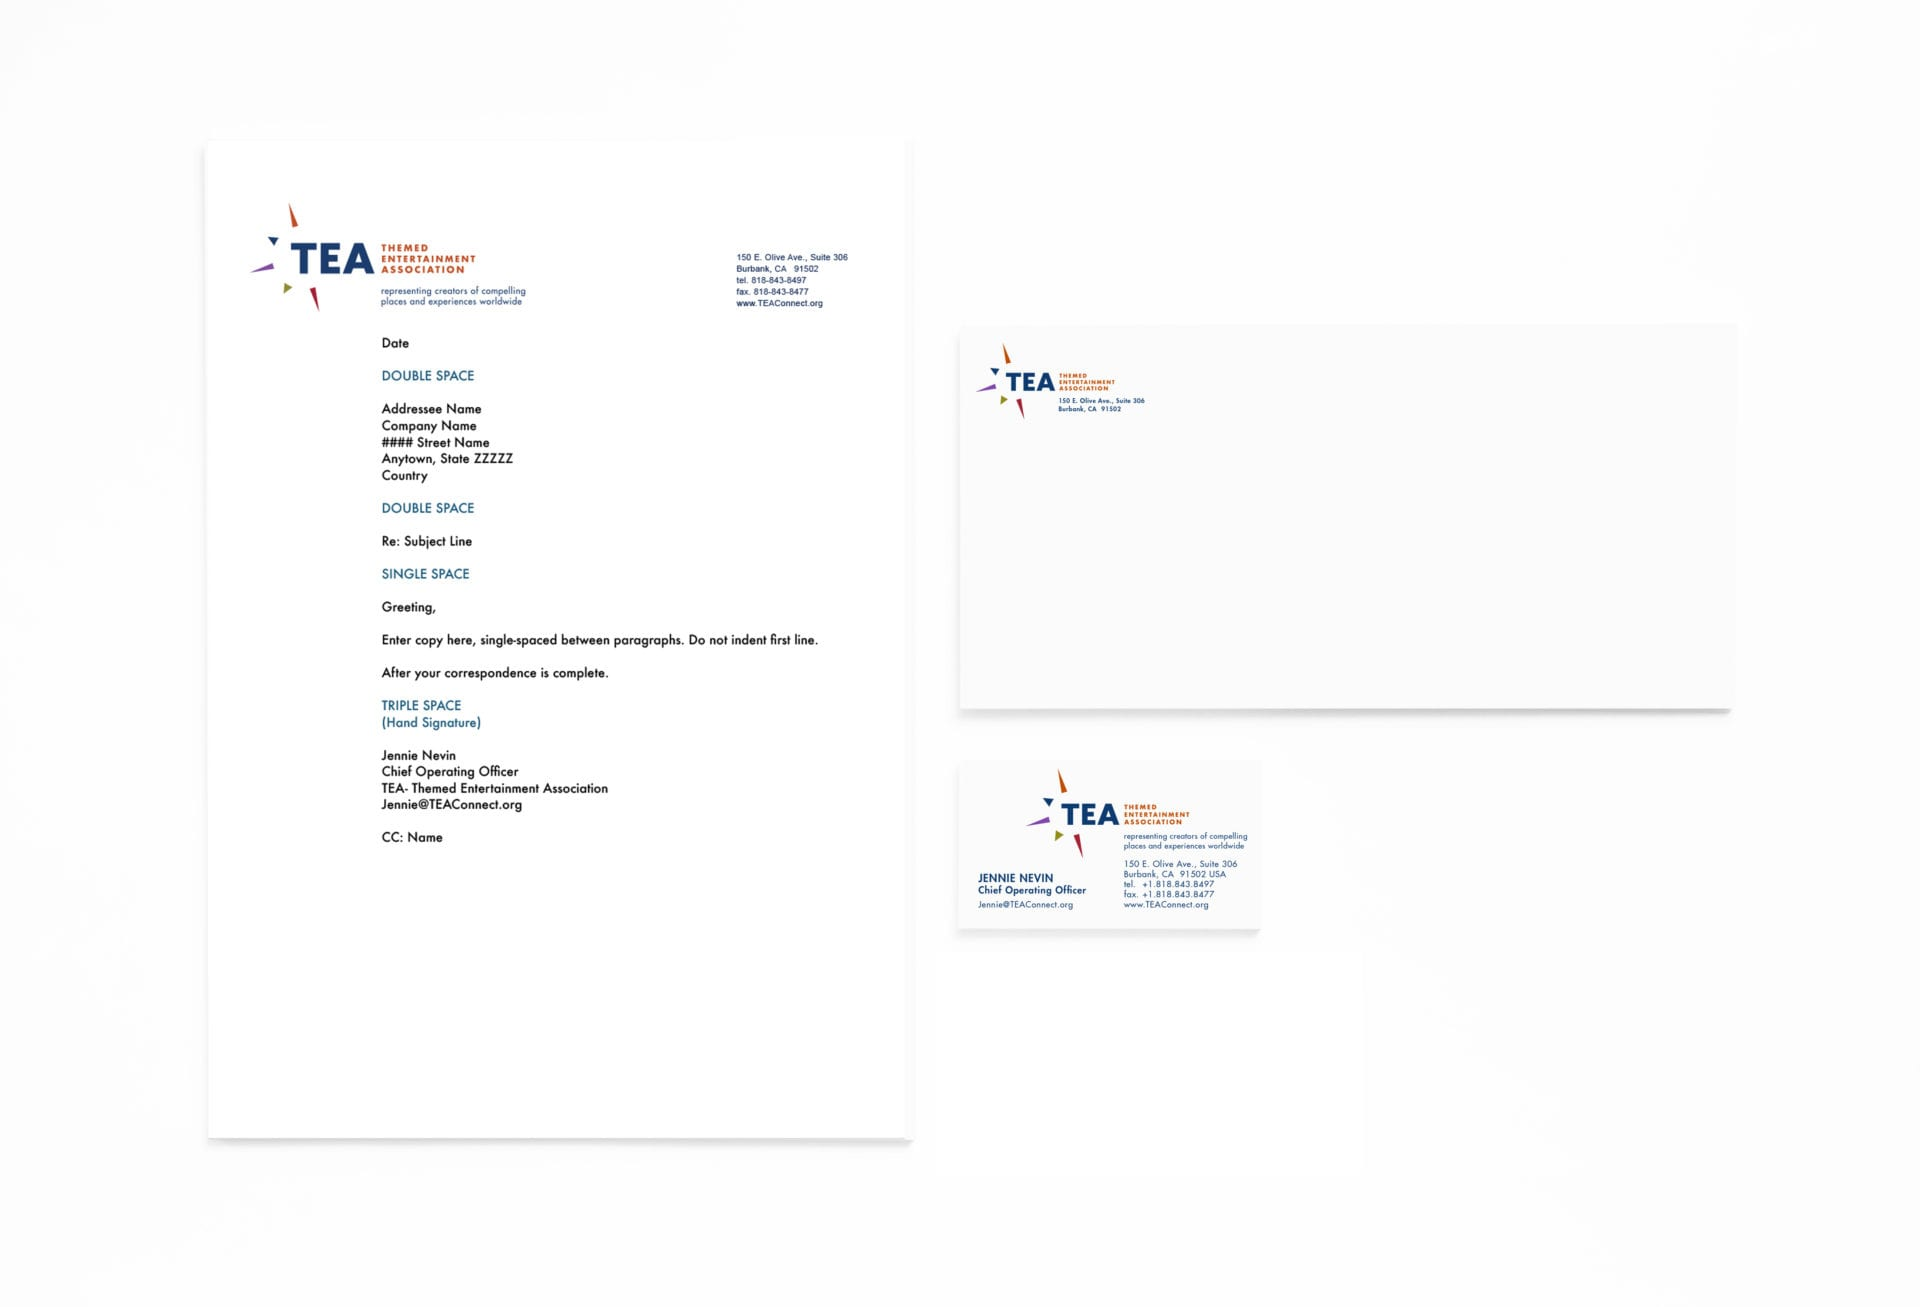 Themed Entertainment Association stationary, letterheads, envelopes, and business card